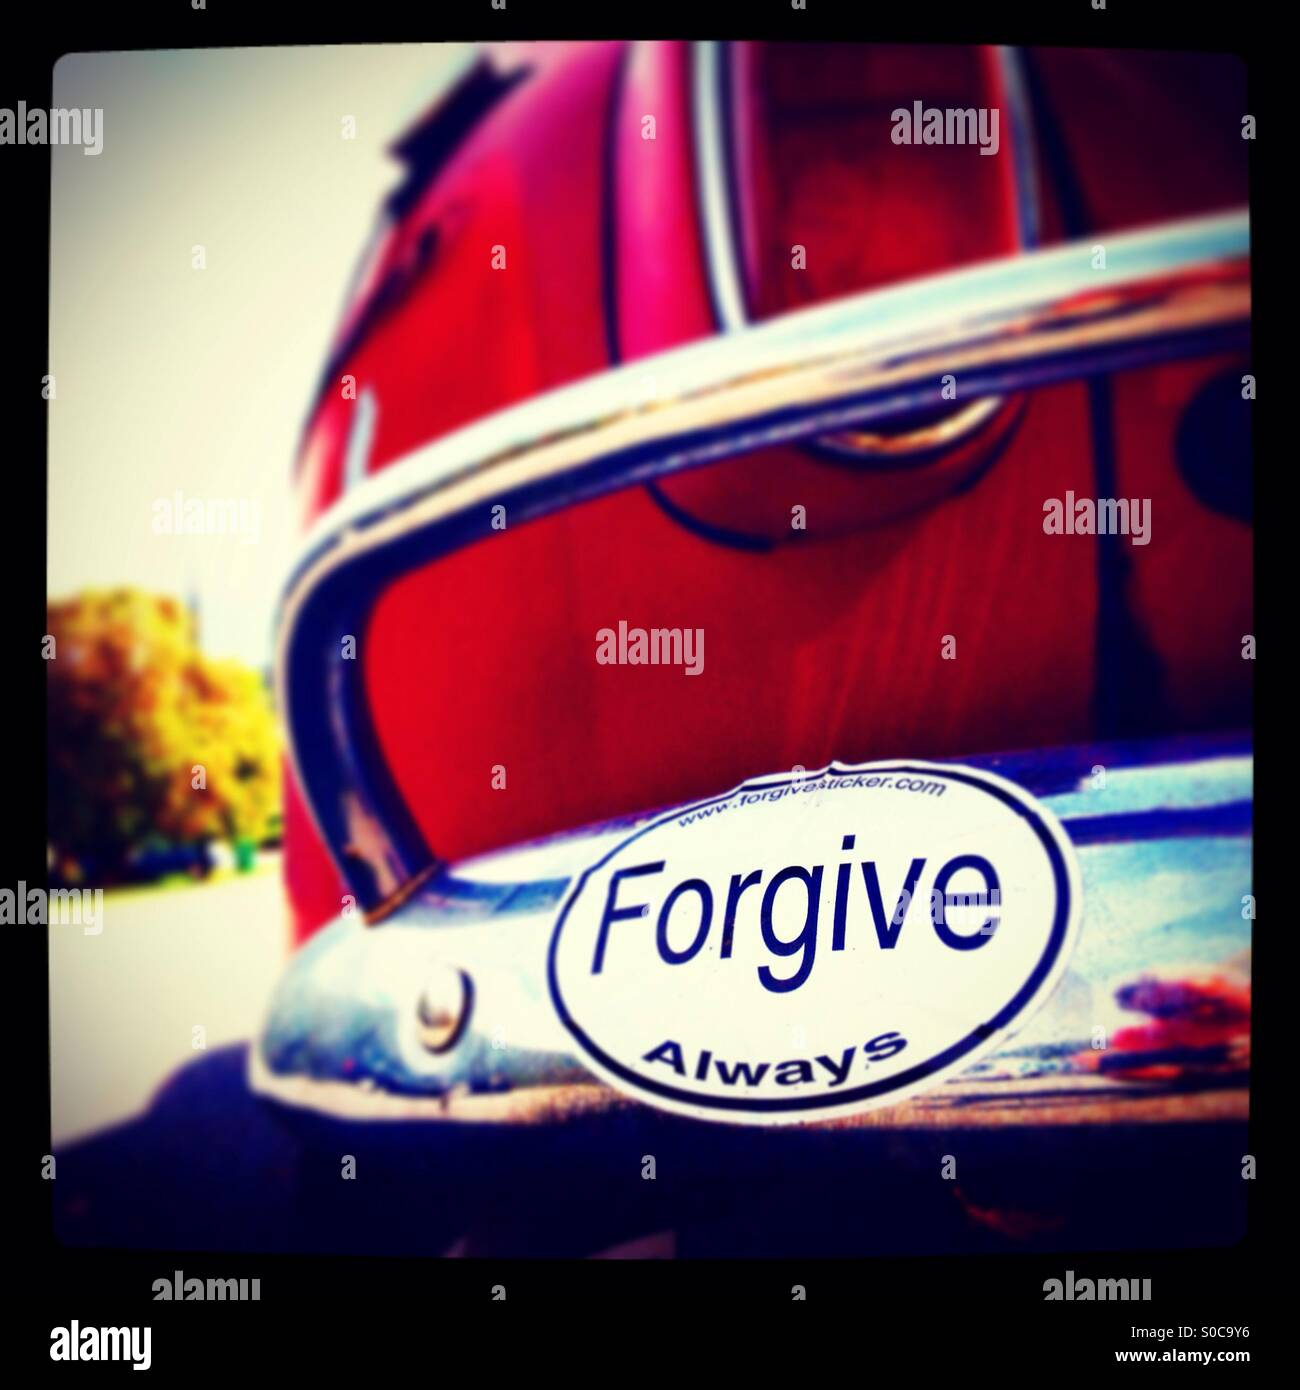 Forgive Always car bumper sticker Volvo - Stock Image